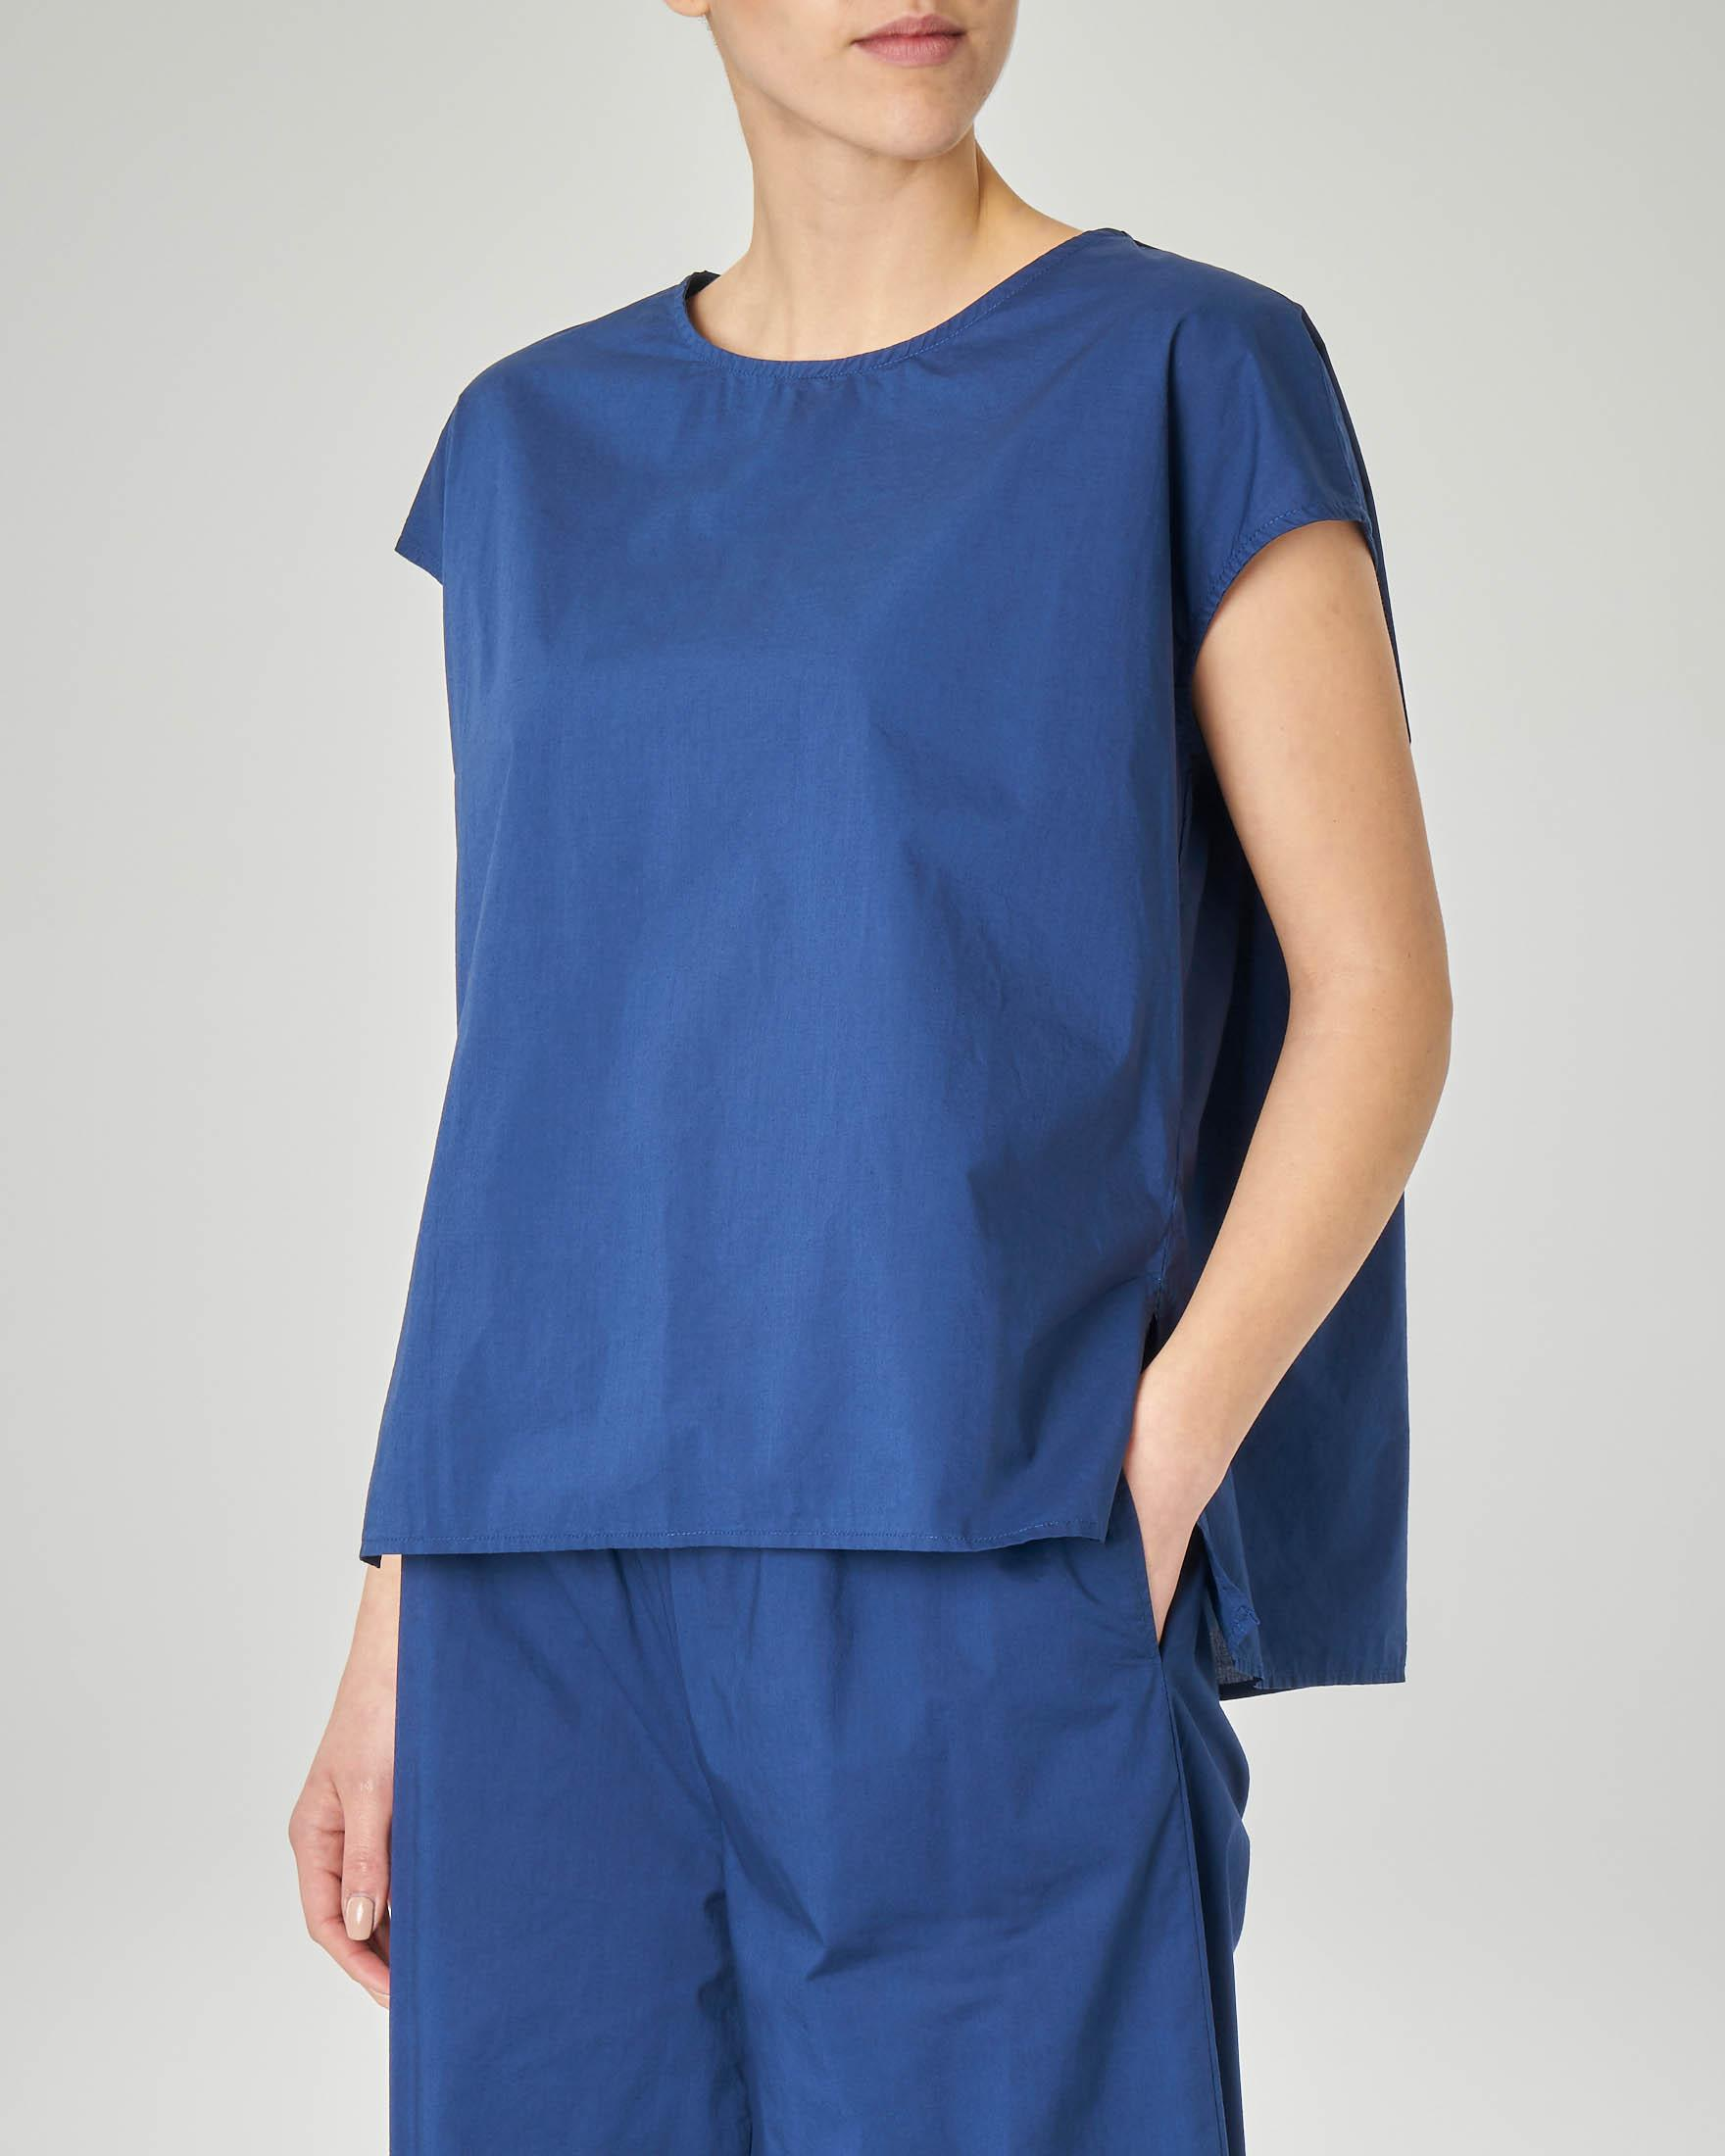 Top girocollo in cotone blu china linea dritta over